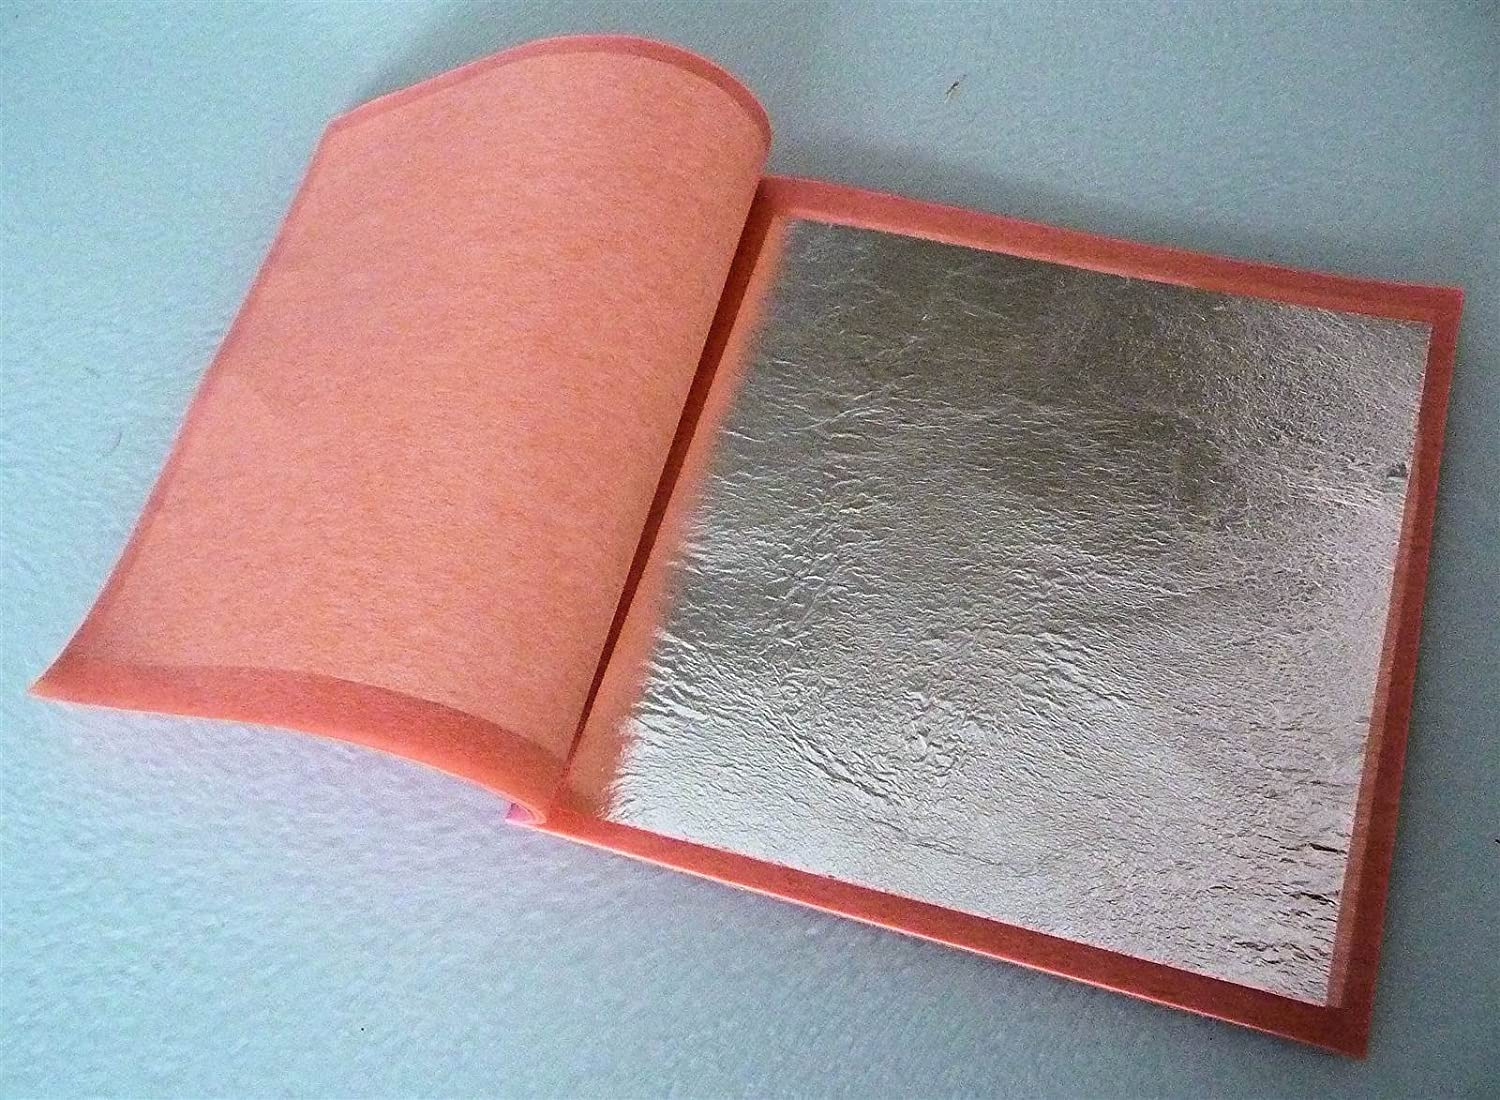 25x 95mm Pure 999 Silver Edible Loose Leaf Sheets in Booklets, Huge! 9.5cm 3.75